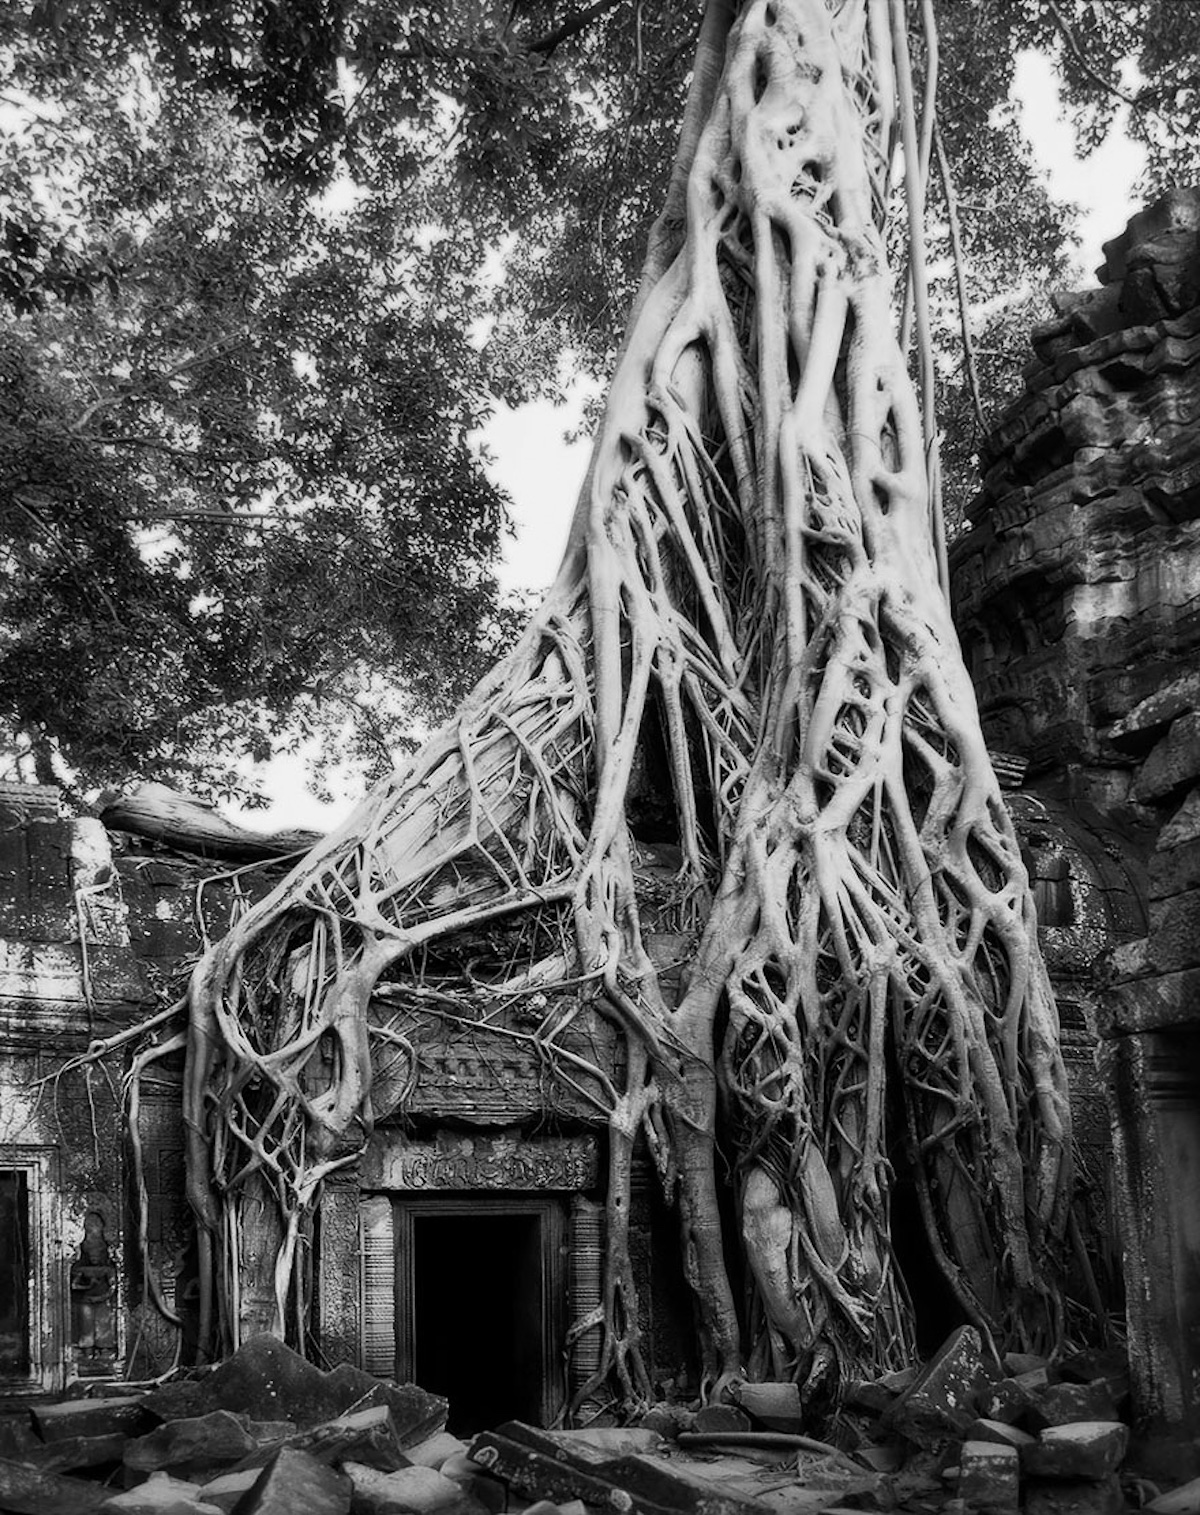 Oldest Tree Photographs by Beth Moon